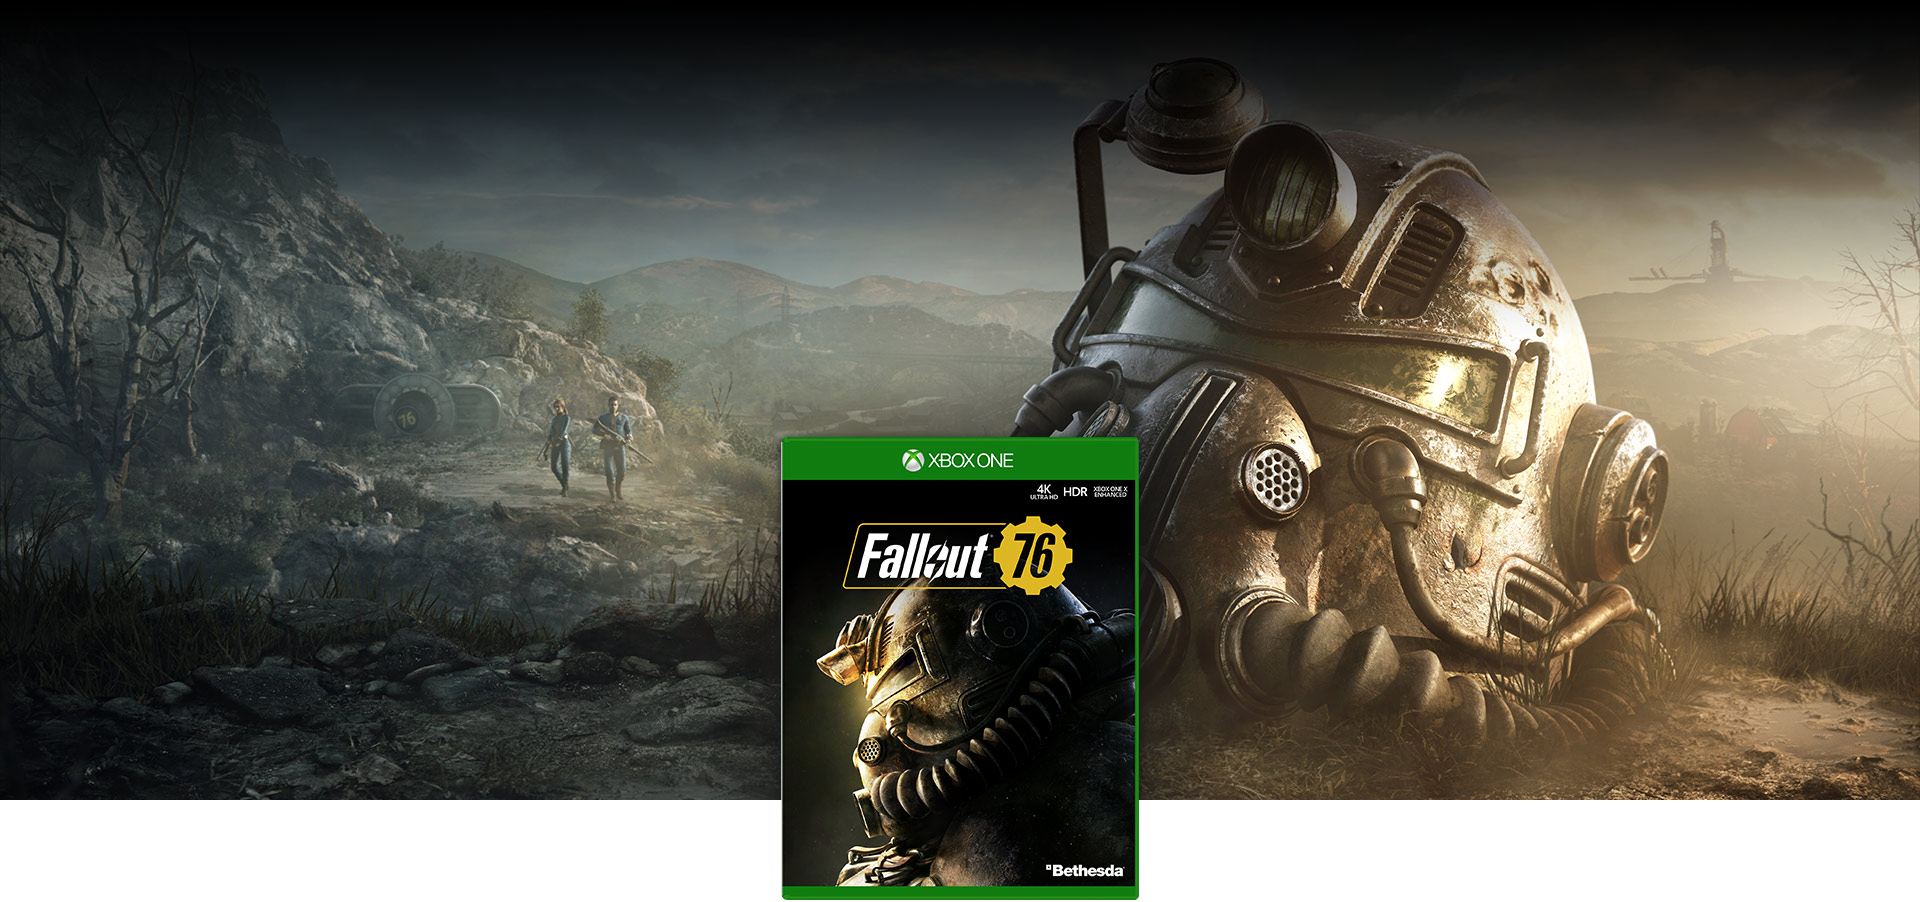 Fallout 76 boxshot, Power Armor mask sits on the ground as two people emerge from Vault 76